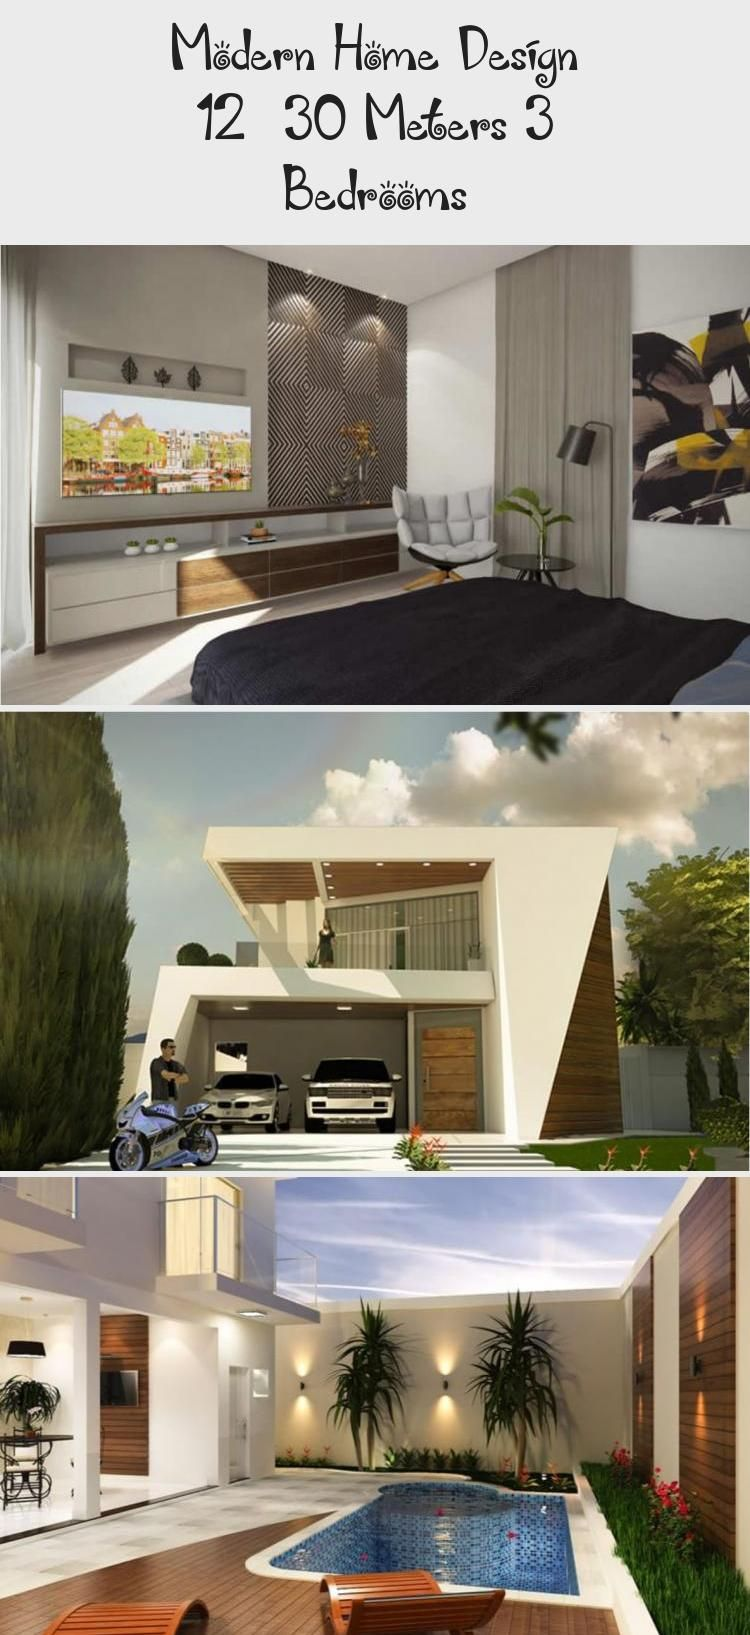 En Blog En Blog In 2020 House Design Architecture Design House Styles